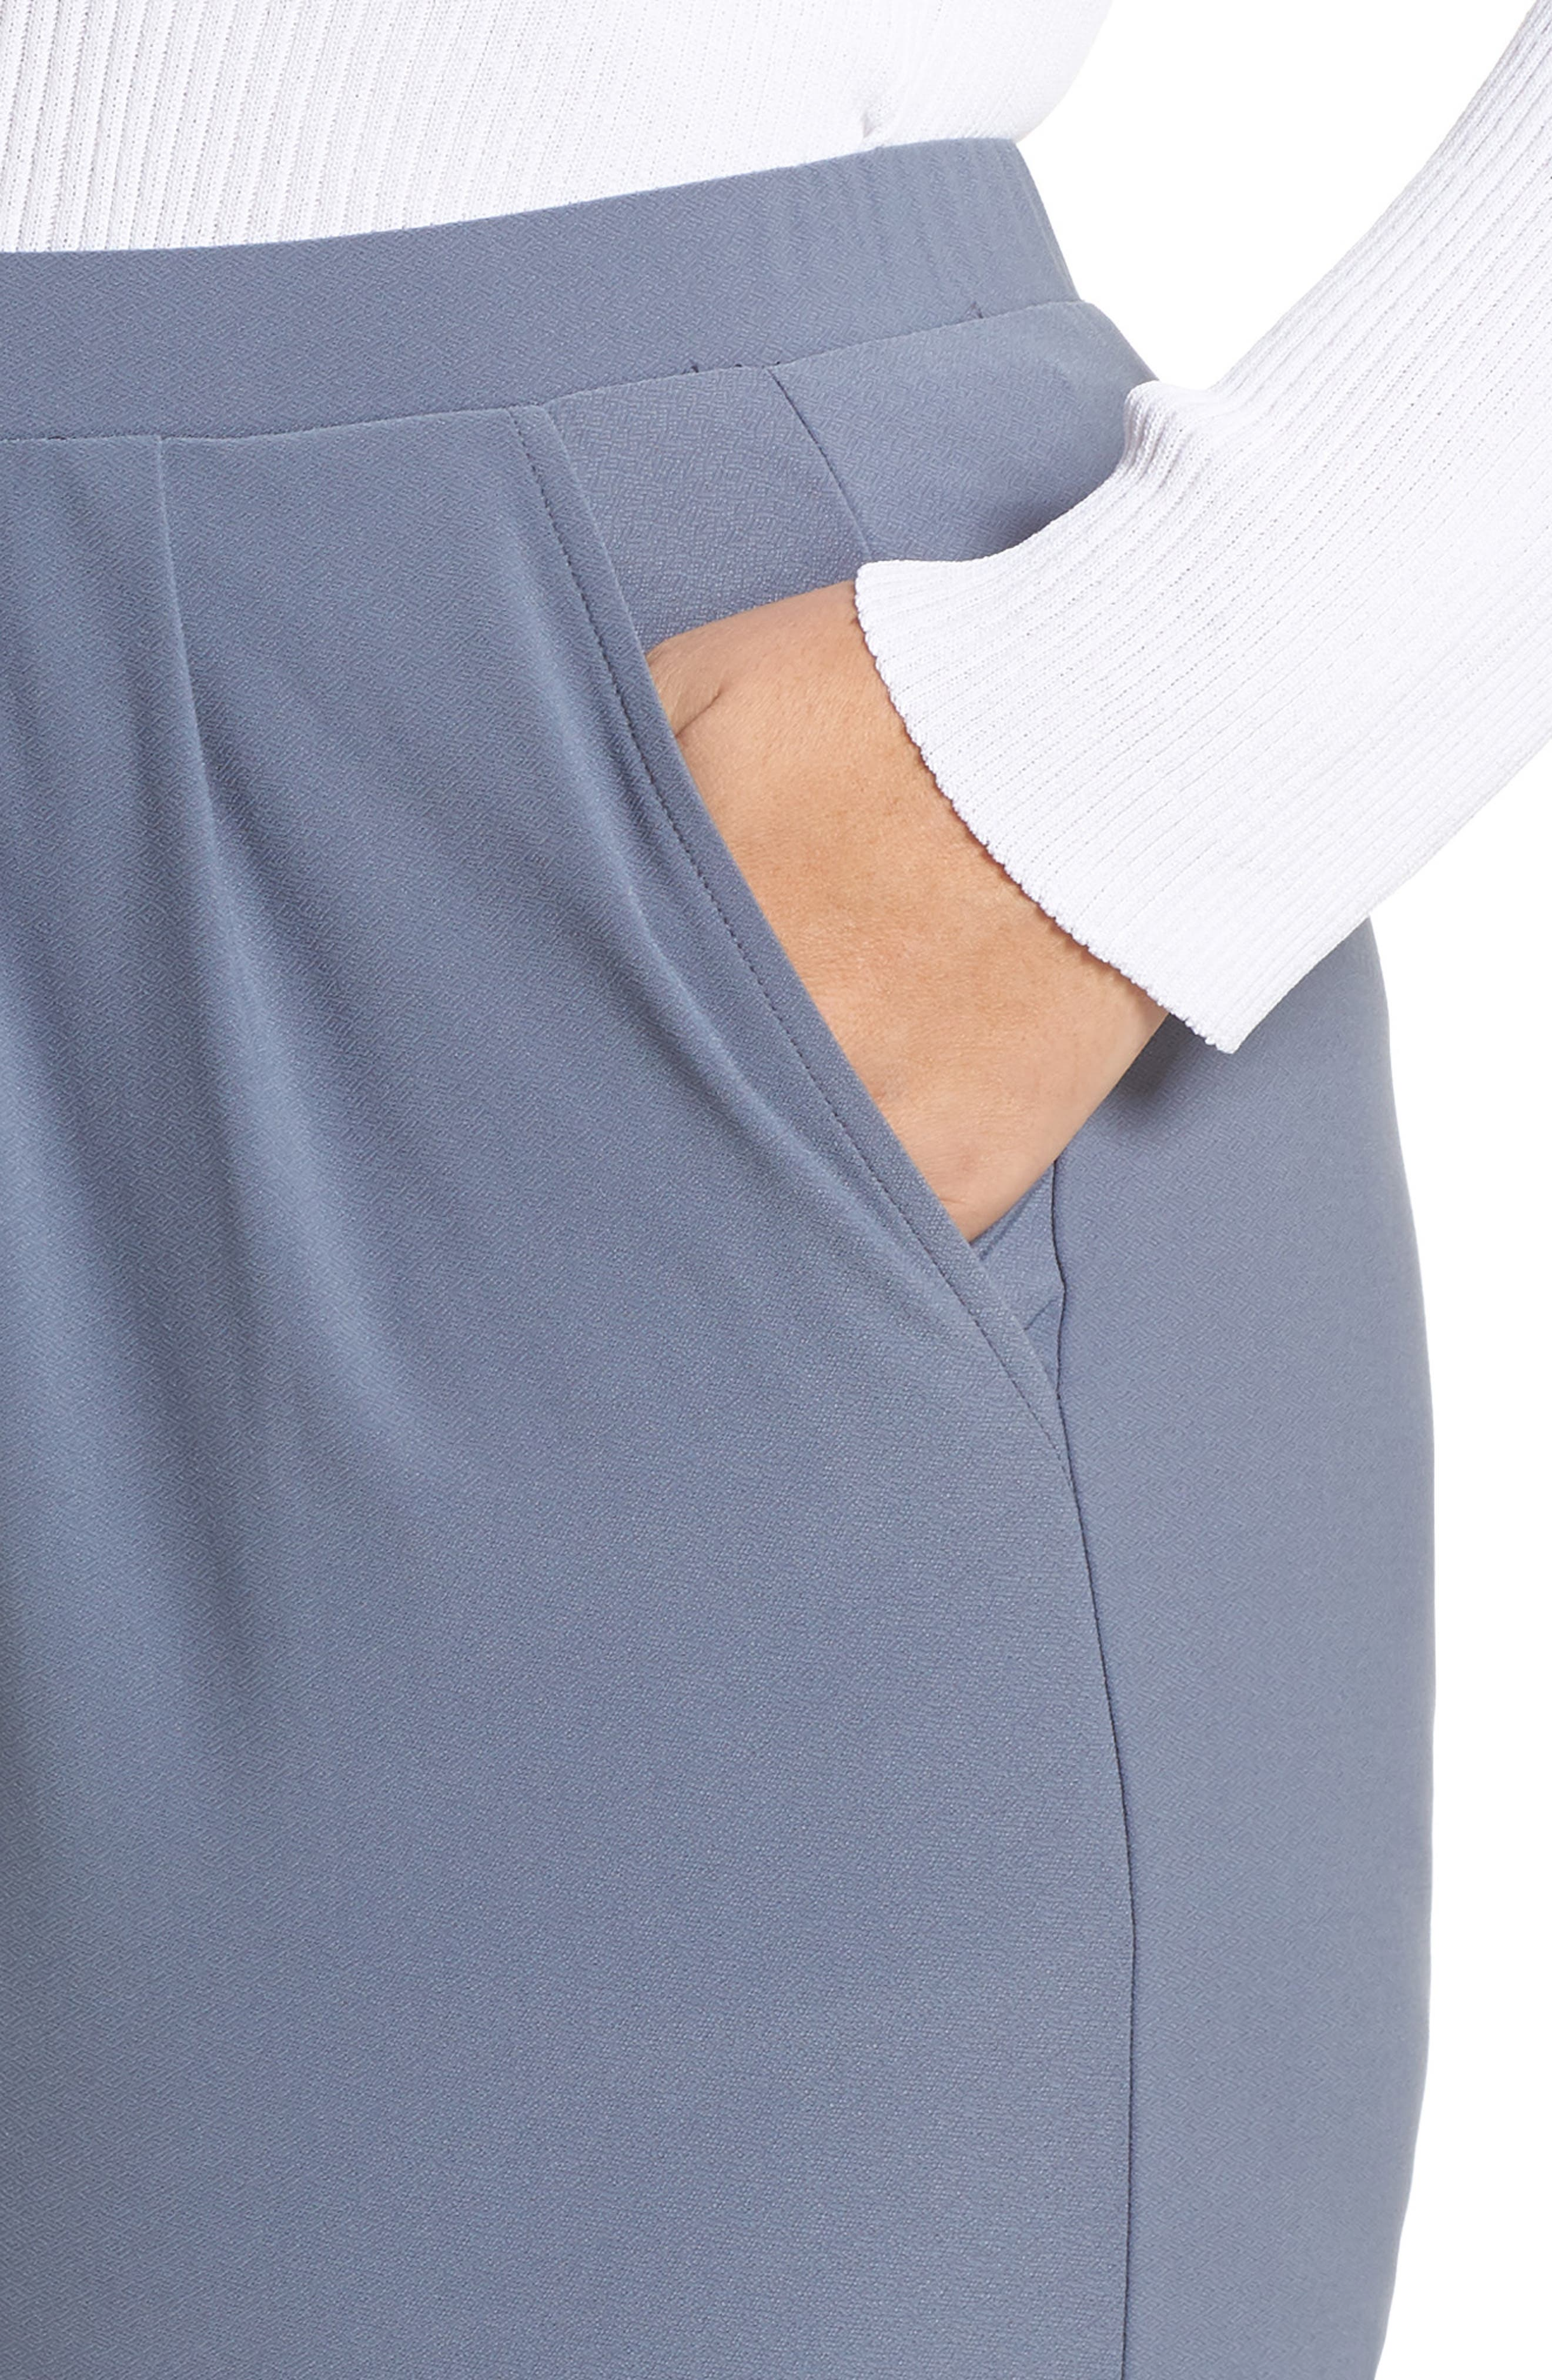 High Rise Pleated Pants,                             Alternate thumbnail 4, color,                             GREY GRISAILLE